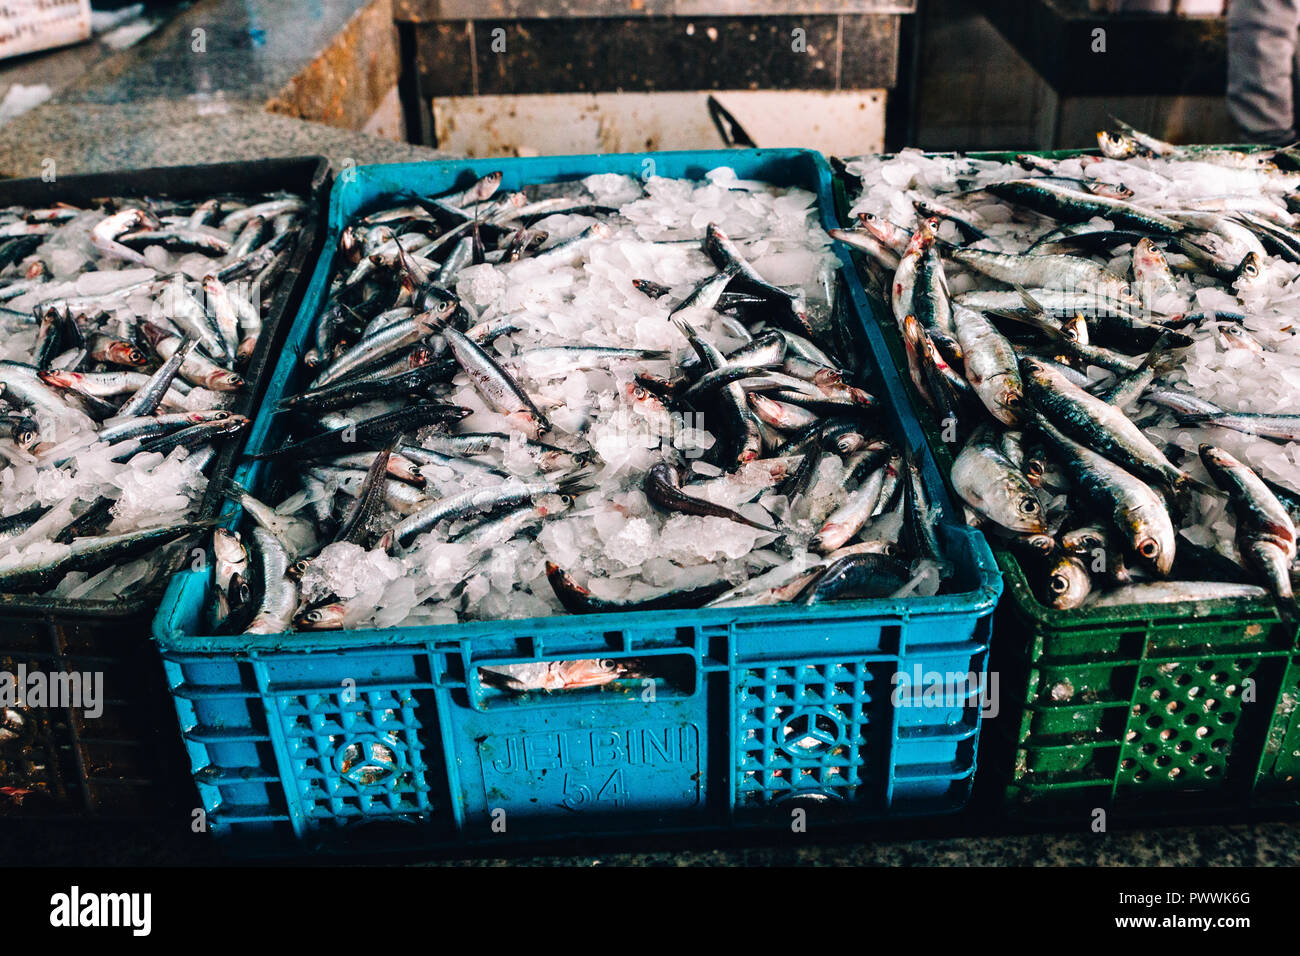 Meat and Fish Market, Tangier, Morocco, 2018 - Stock Image